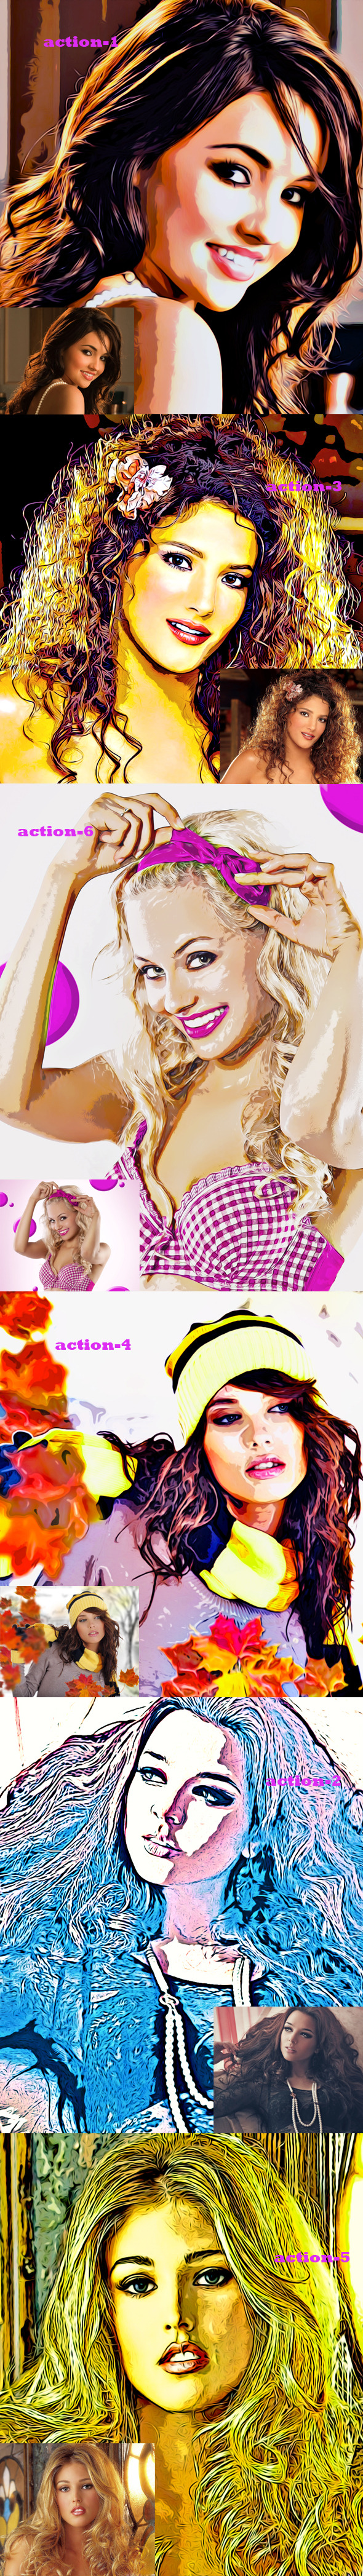 Poster Art Oil Action - Photo Effects Actions